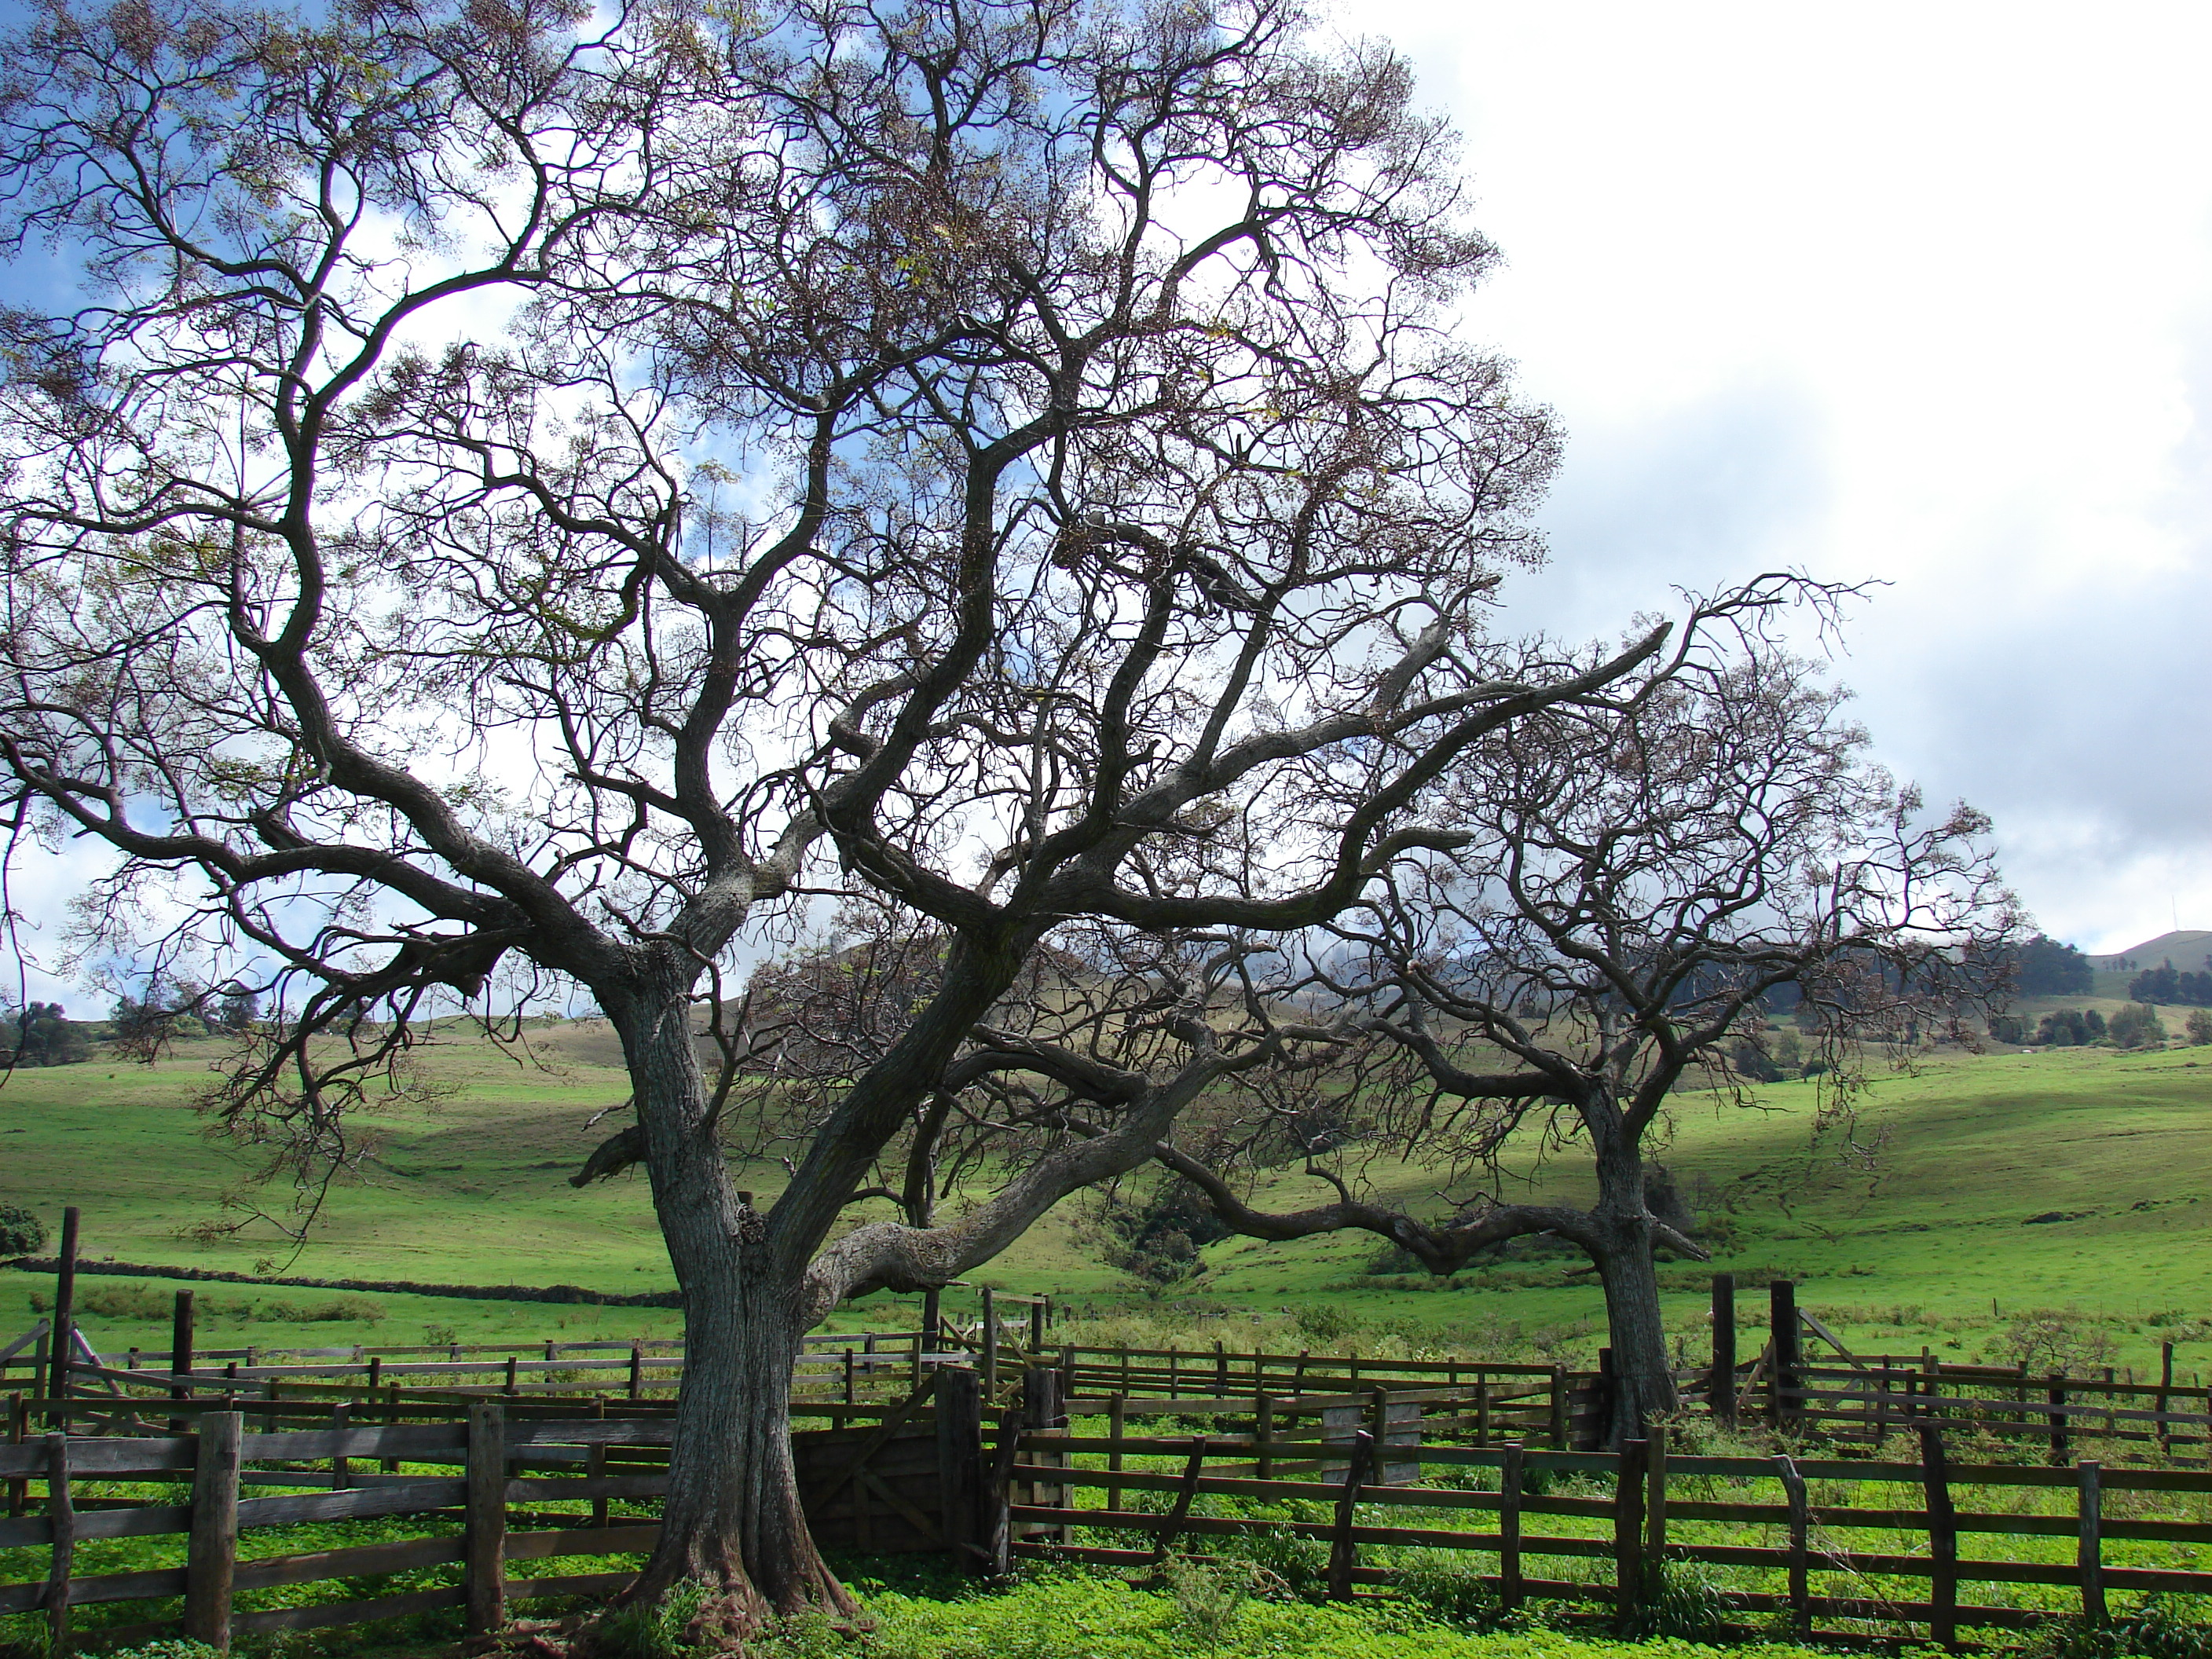 Chinaberry Poisoning In Horses